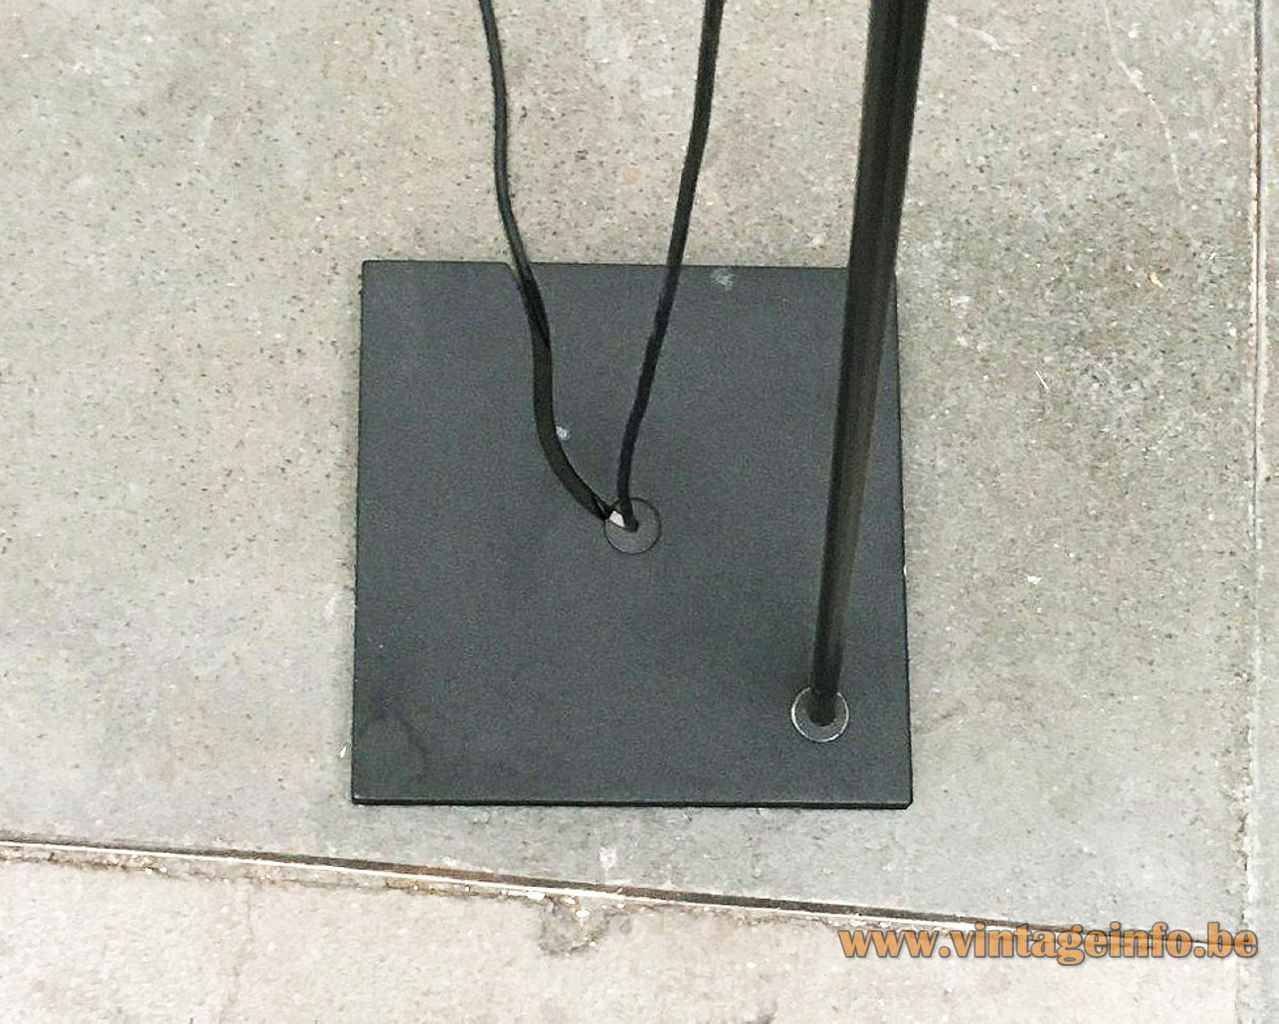 PAF Tao floor lamp square black cast iron base long rod design: Mario Barbaglia & Marco Colombo